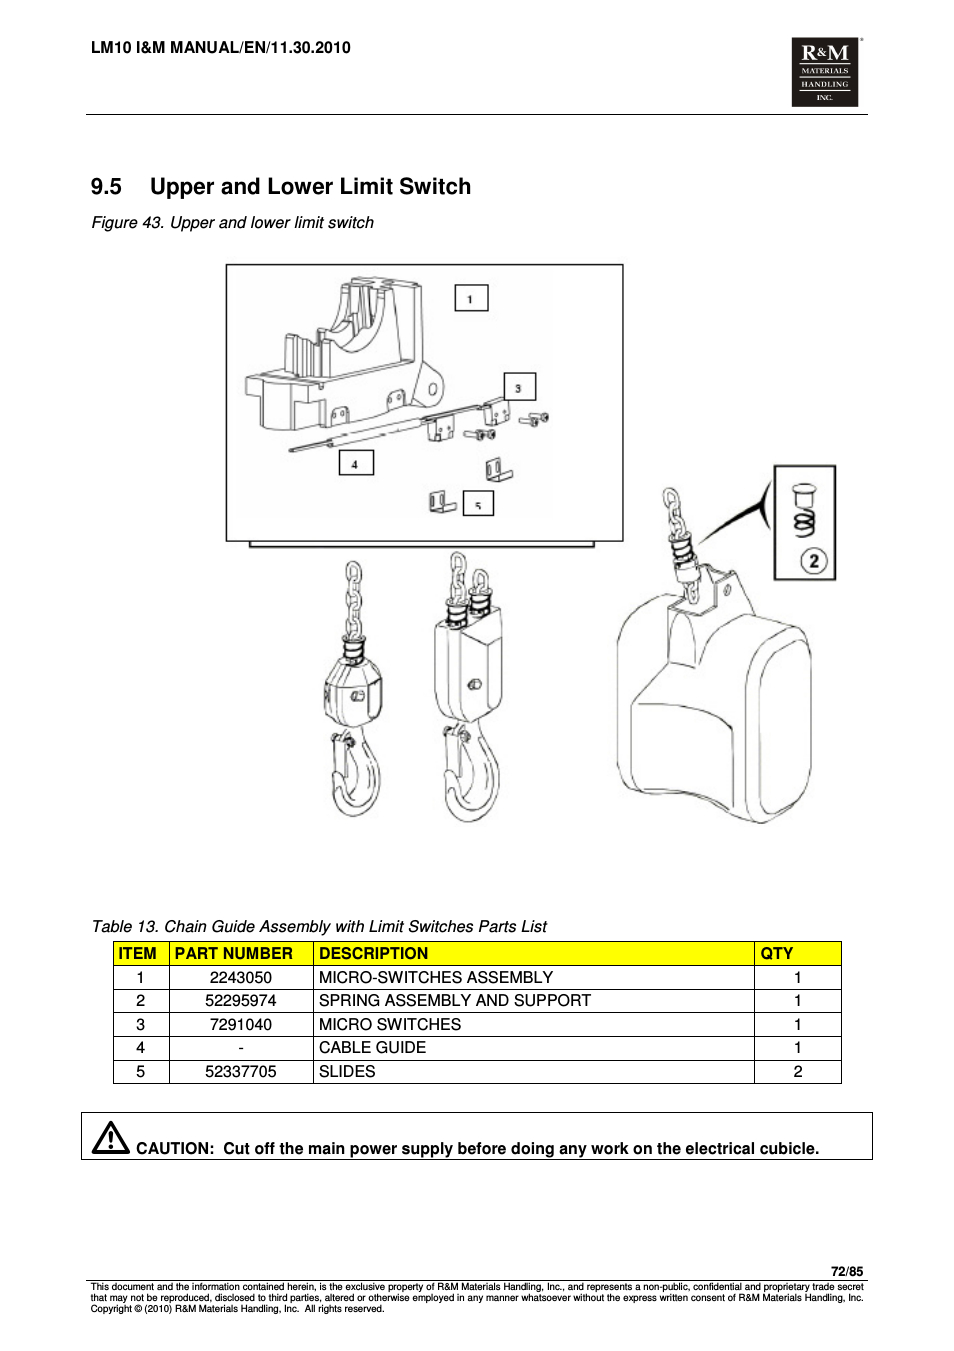 cm chain hoist wiring diagram wiring diagram 2019 rh c58 bs drabner de honda cm 200 wiring diagram cm hoist wiring diagram